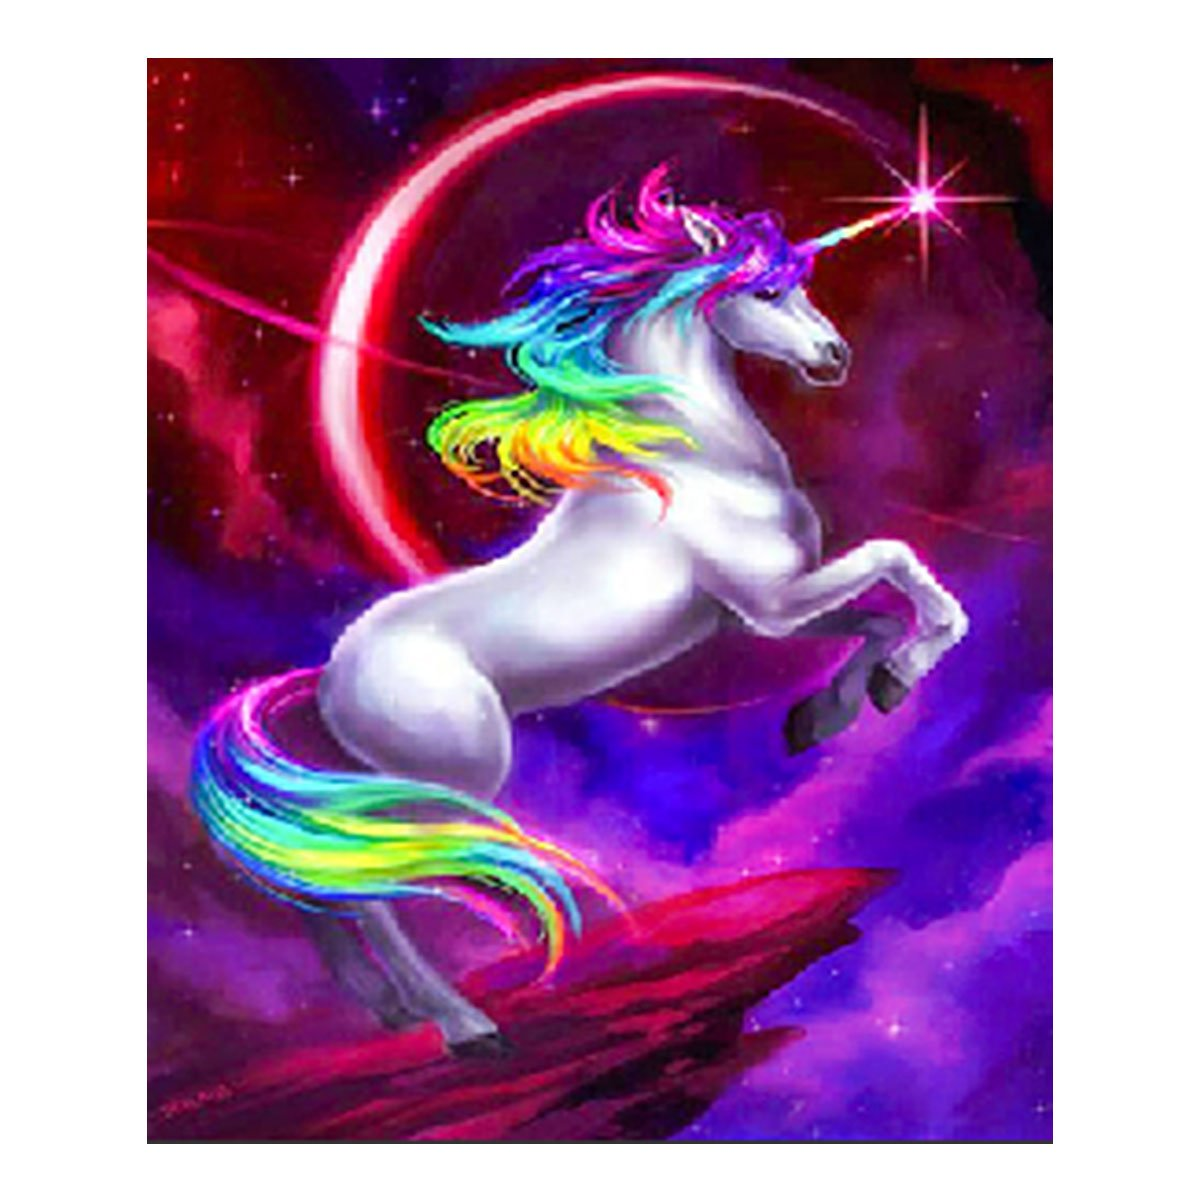 5D Full Drill Painting by Number Diamond Painting Kits for Home Decoration, 10x12 Inches Unicorn Rhinestone Embroidery Cross Stitch for Family Activities and Emotional Adjustment eZAKKA